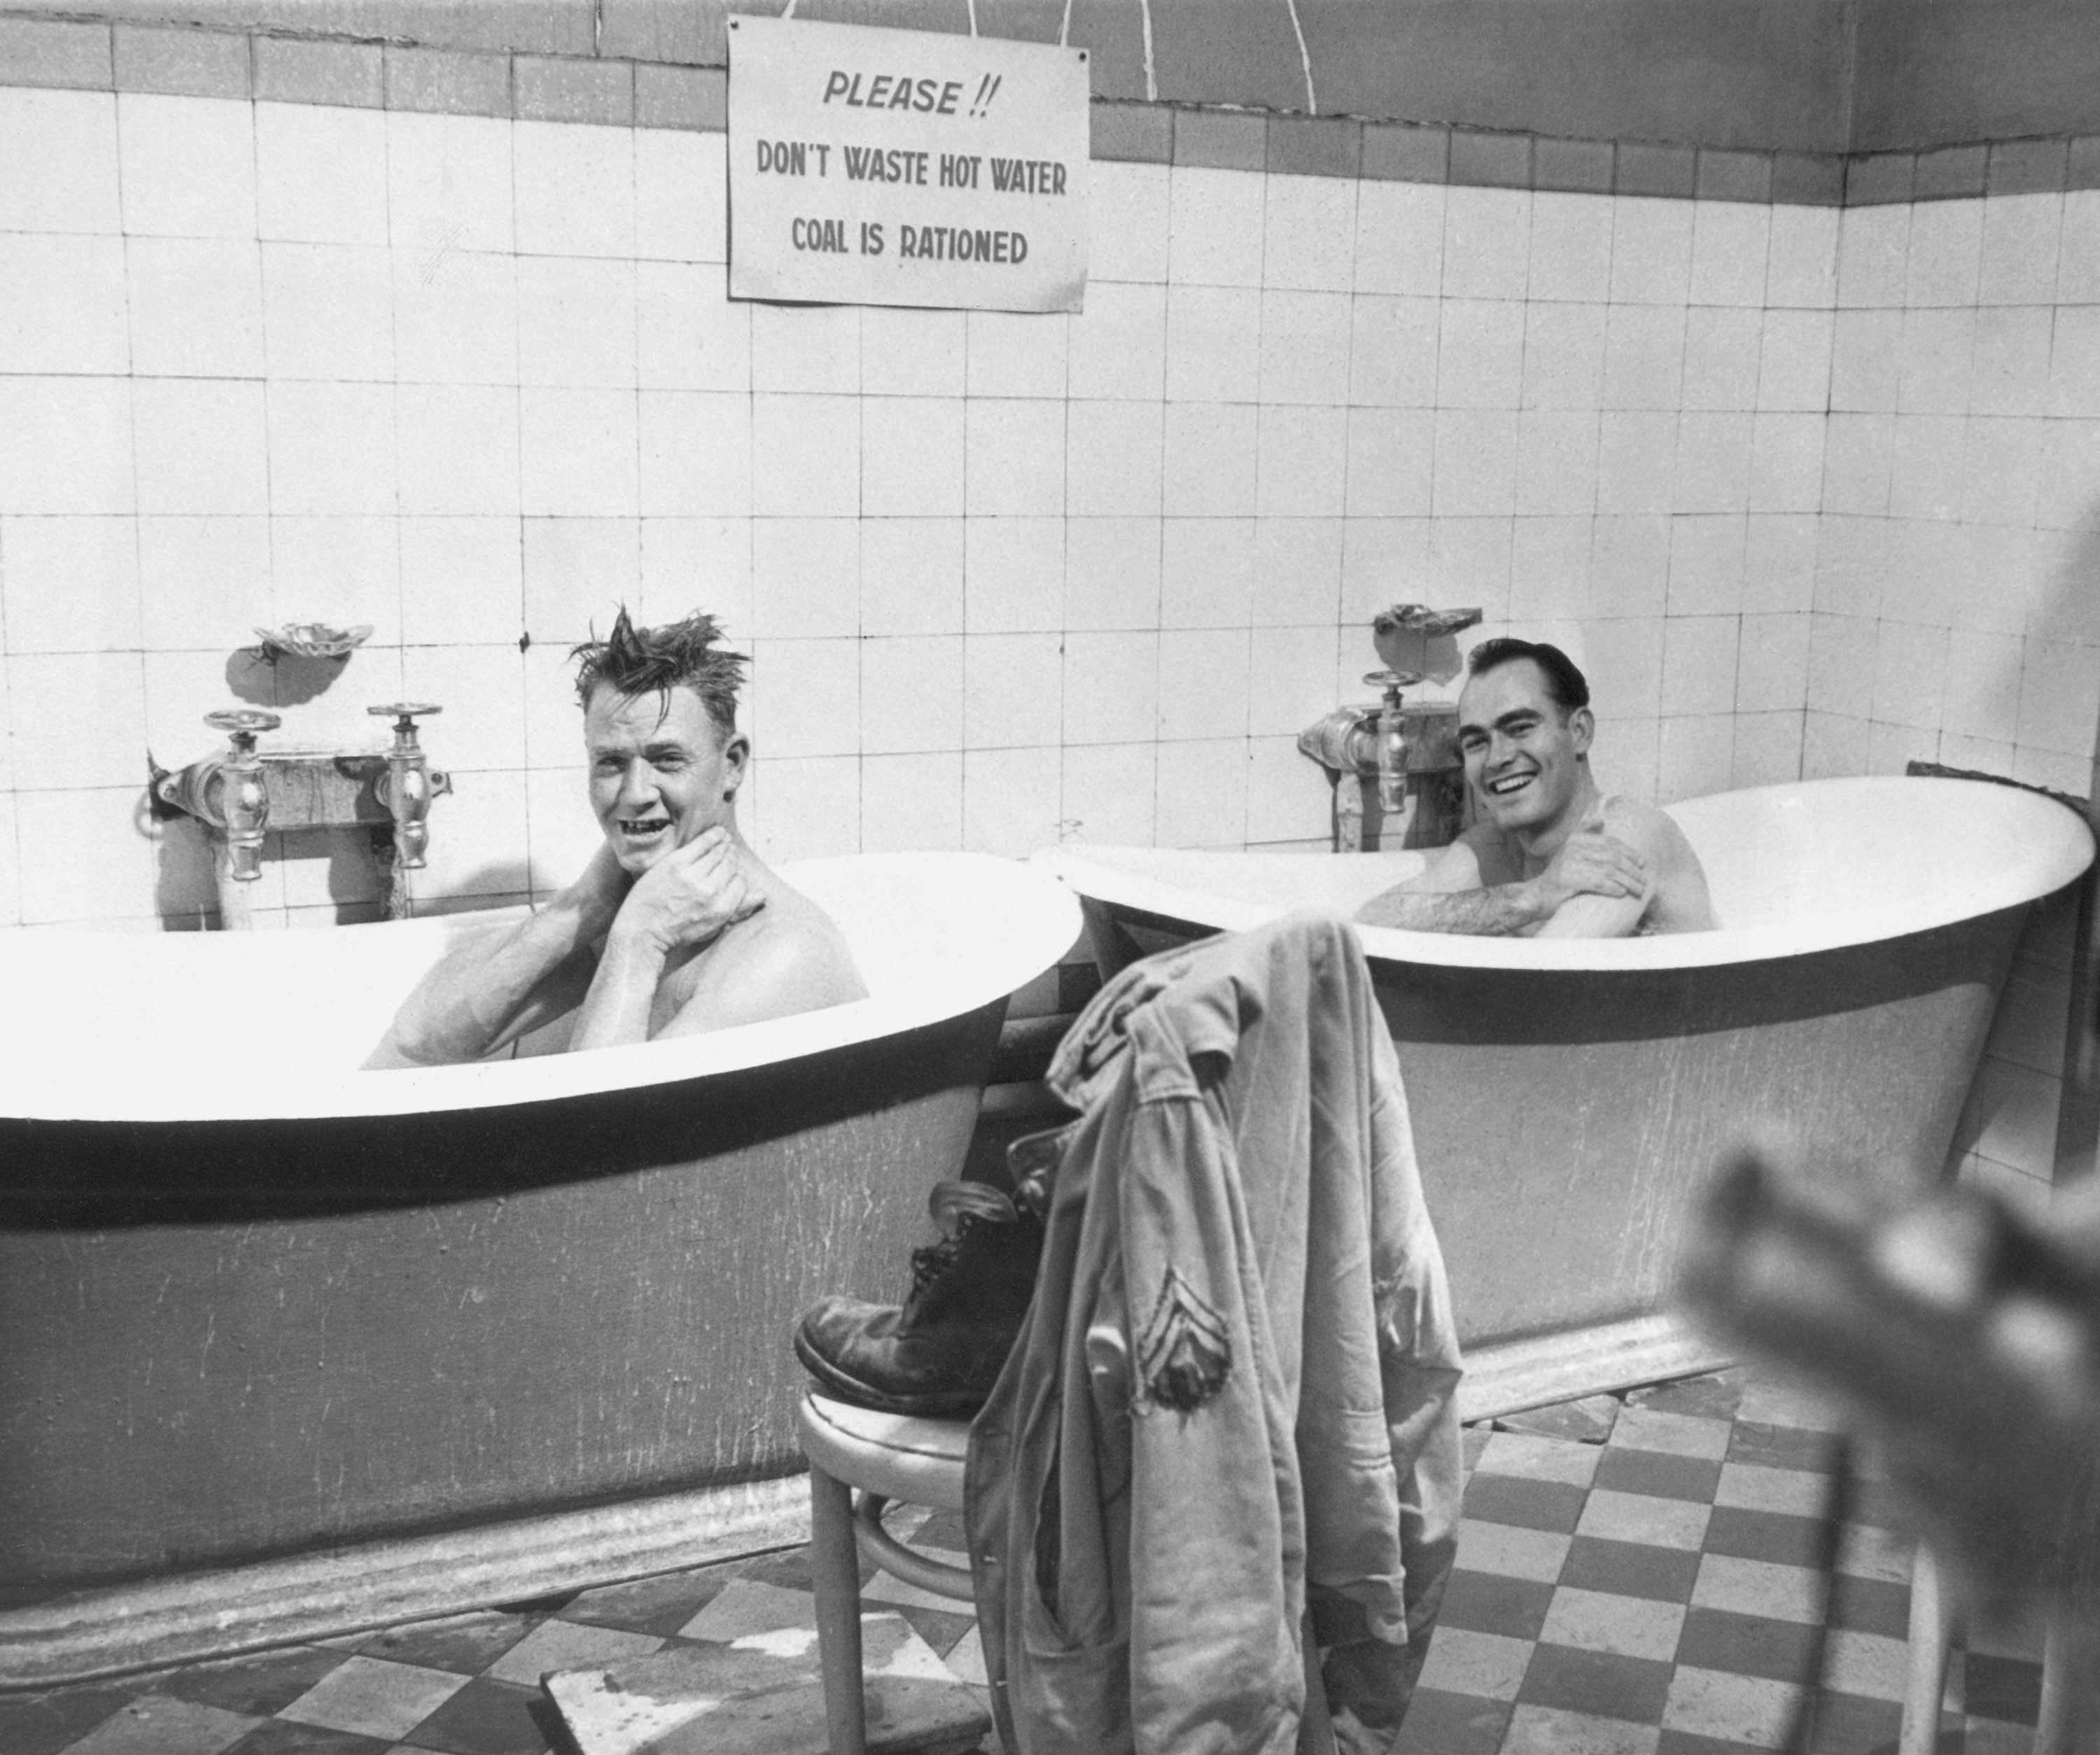 Two American soldiers enjoy the luxury of a hot bath in a French bathhouse at Dijon, now being operated by the Red Cross. From left, Cpl. Manuel Hohenberger and Cpl. George O. Clark.